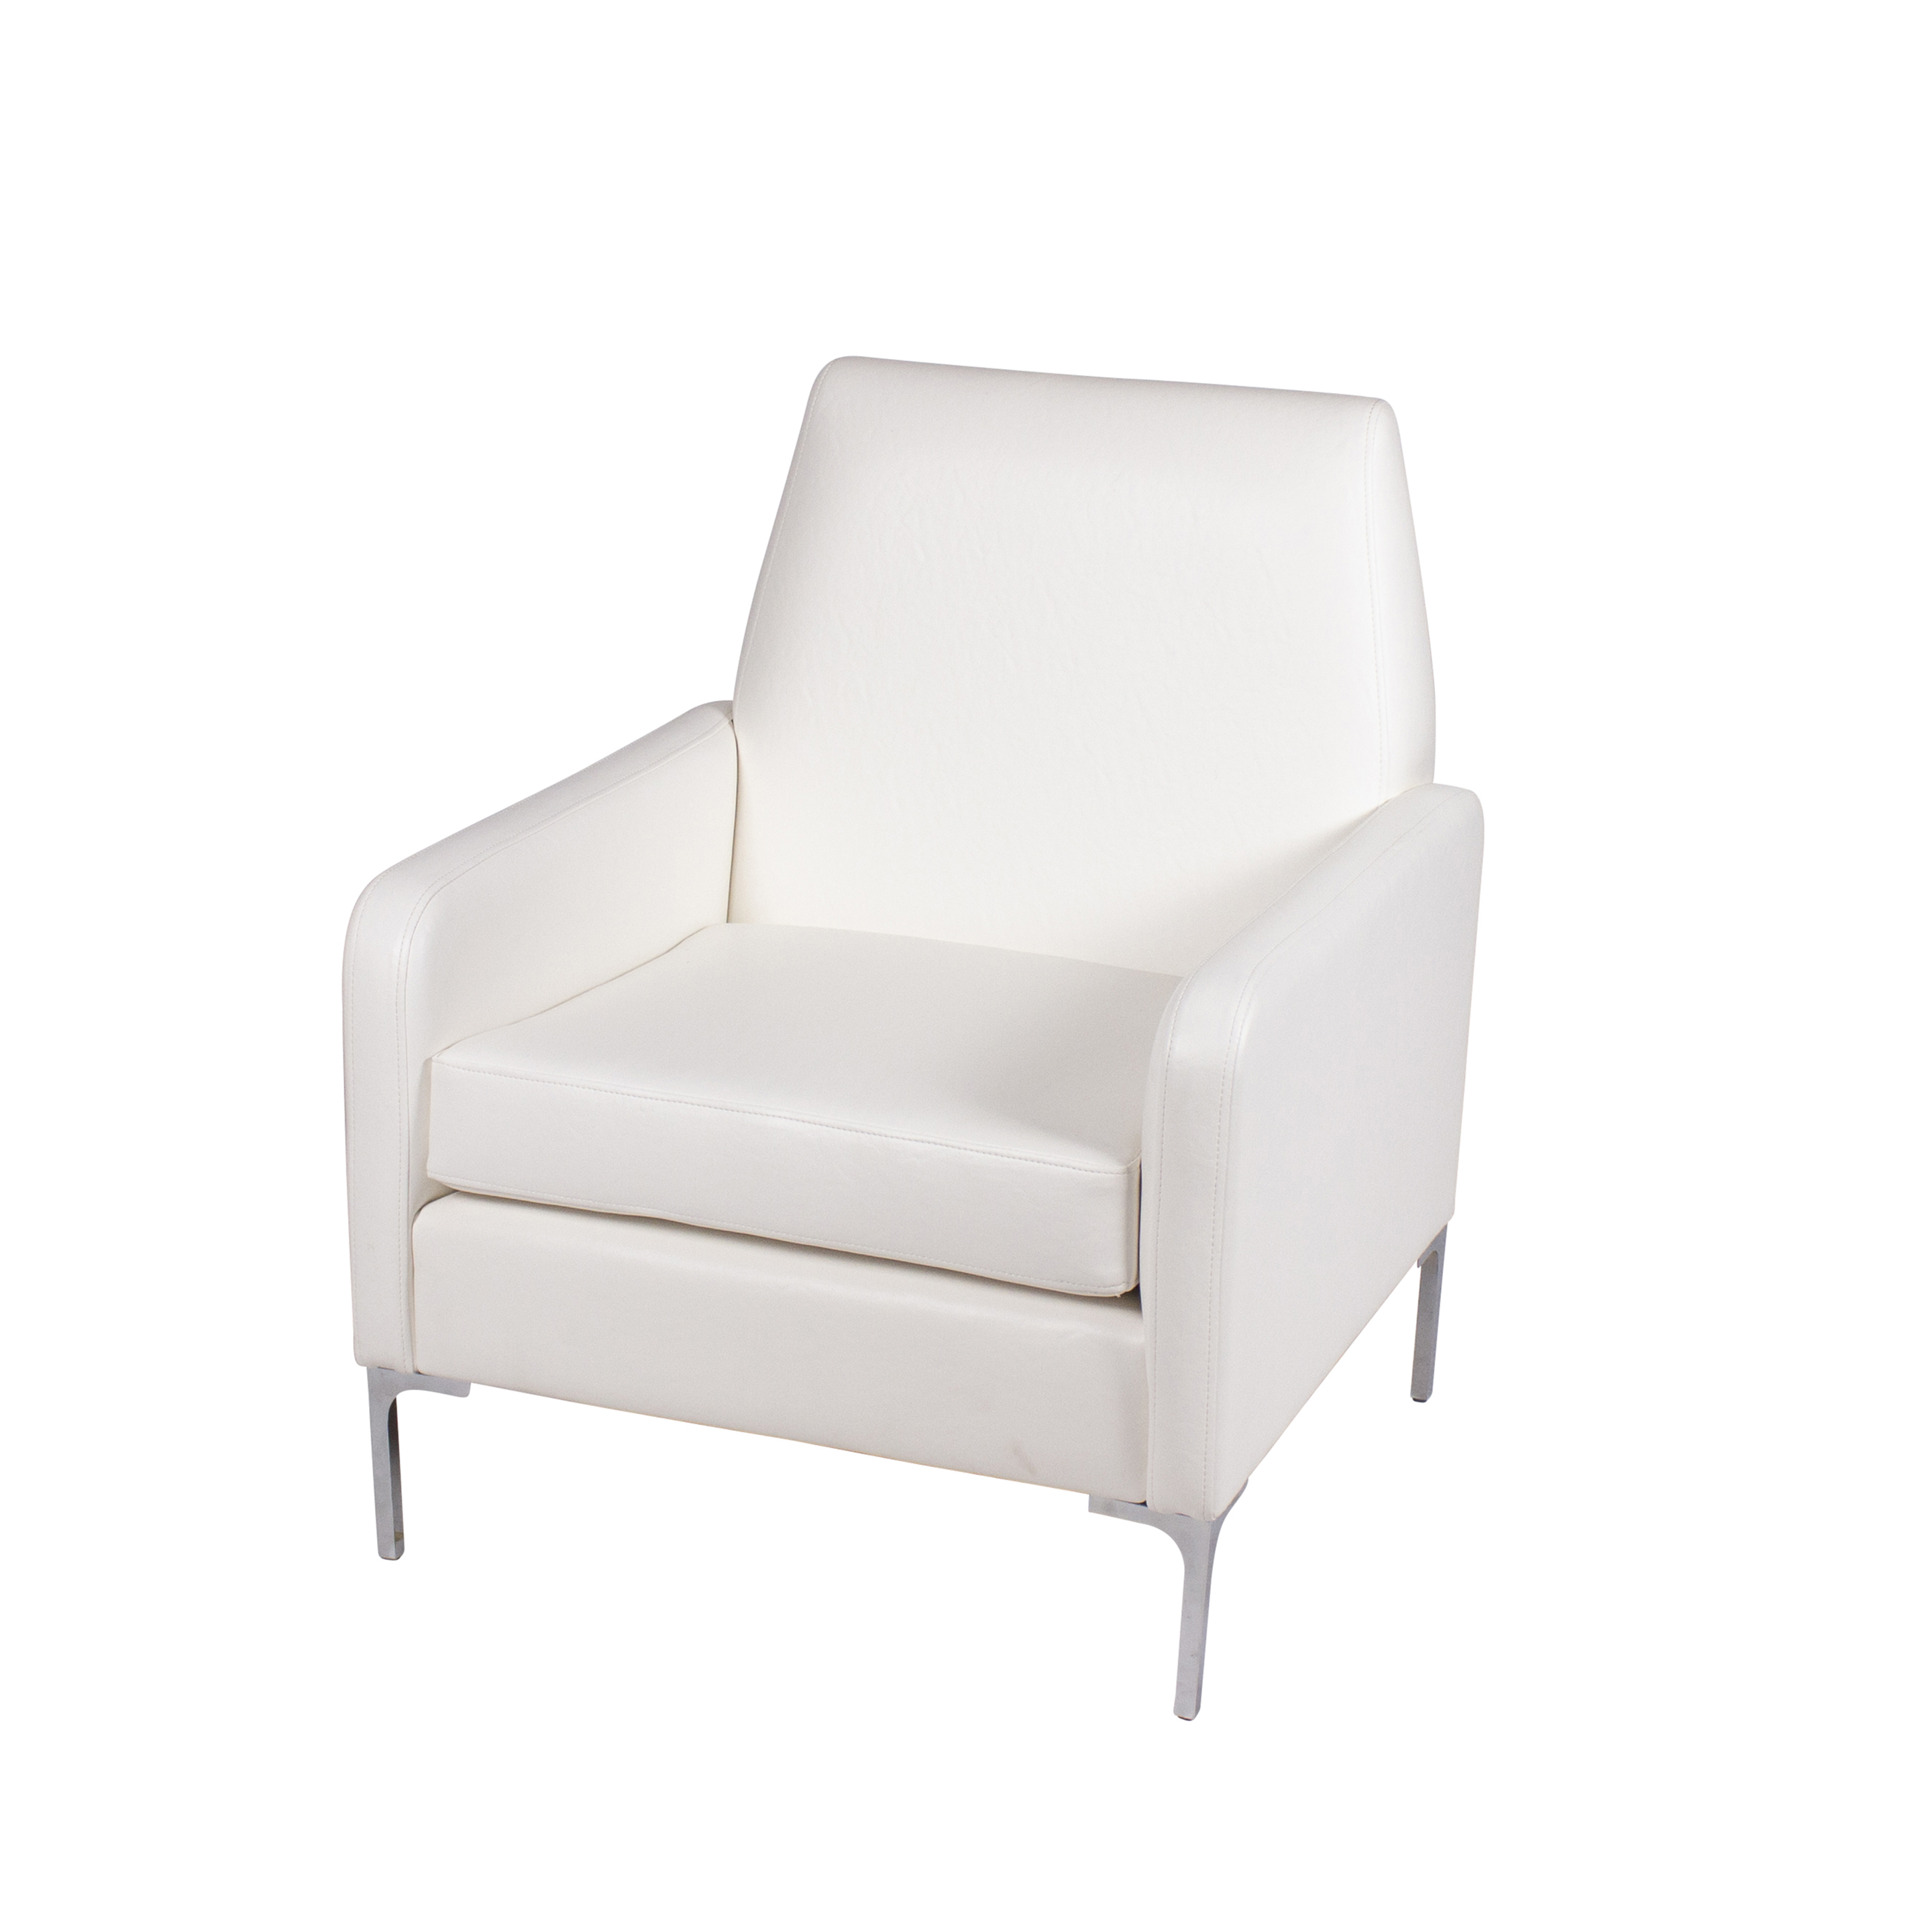 Seating_Chairs_Shelter_White_Side.jpg